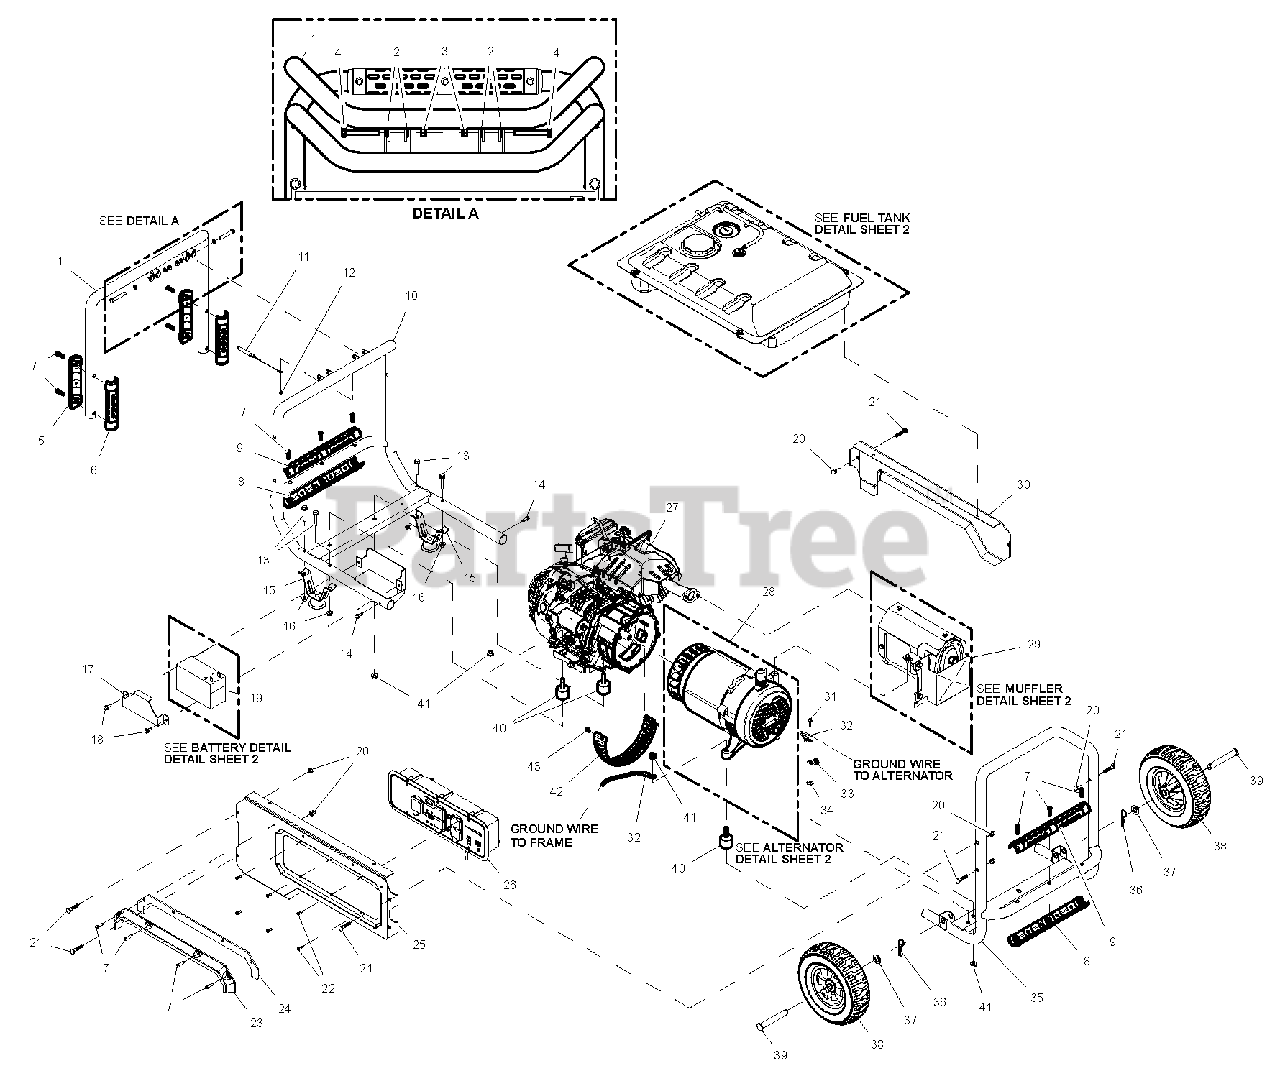 Generac Parts On The Ev Xt8000e  0k3609  Diagram For Xt8000  0064330